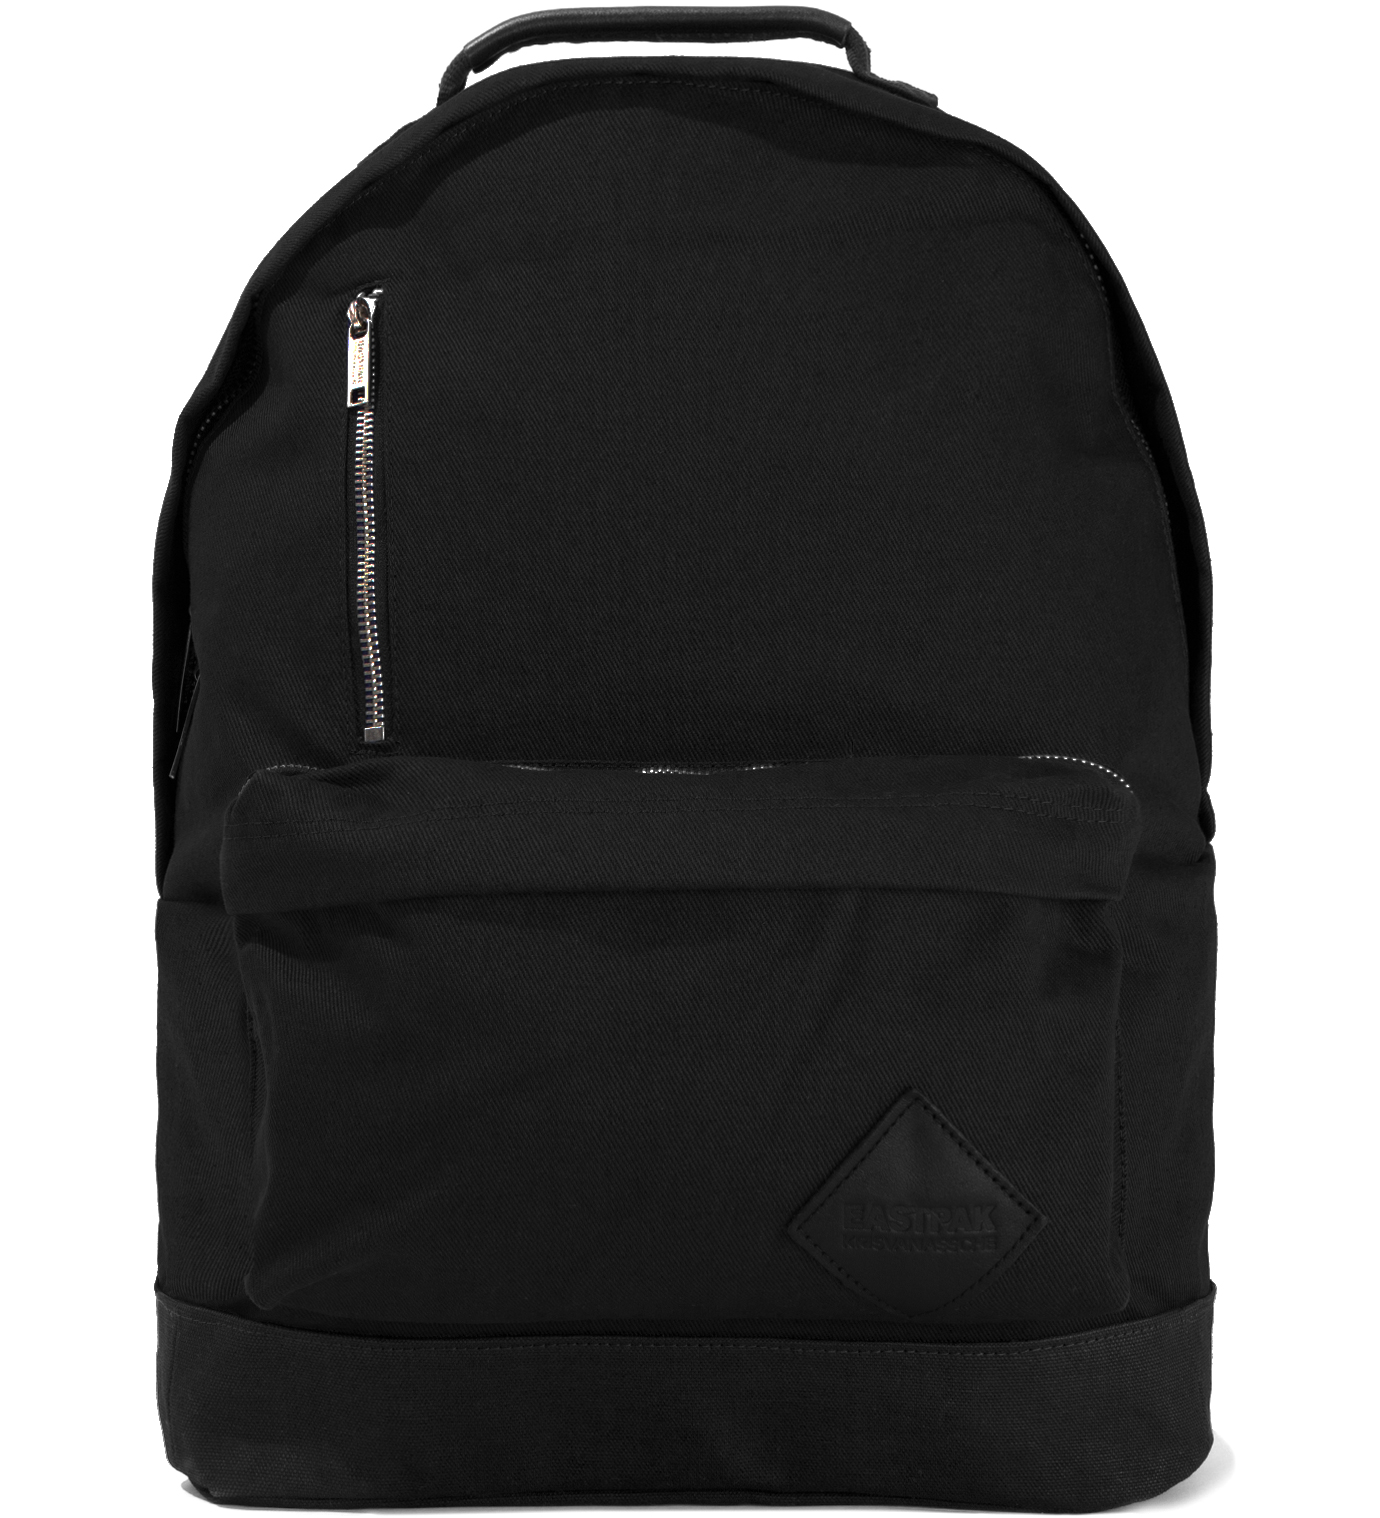 KRISVANASSCHE Eastpak KRISVANASSCHE Black Cotton Backpack II